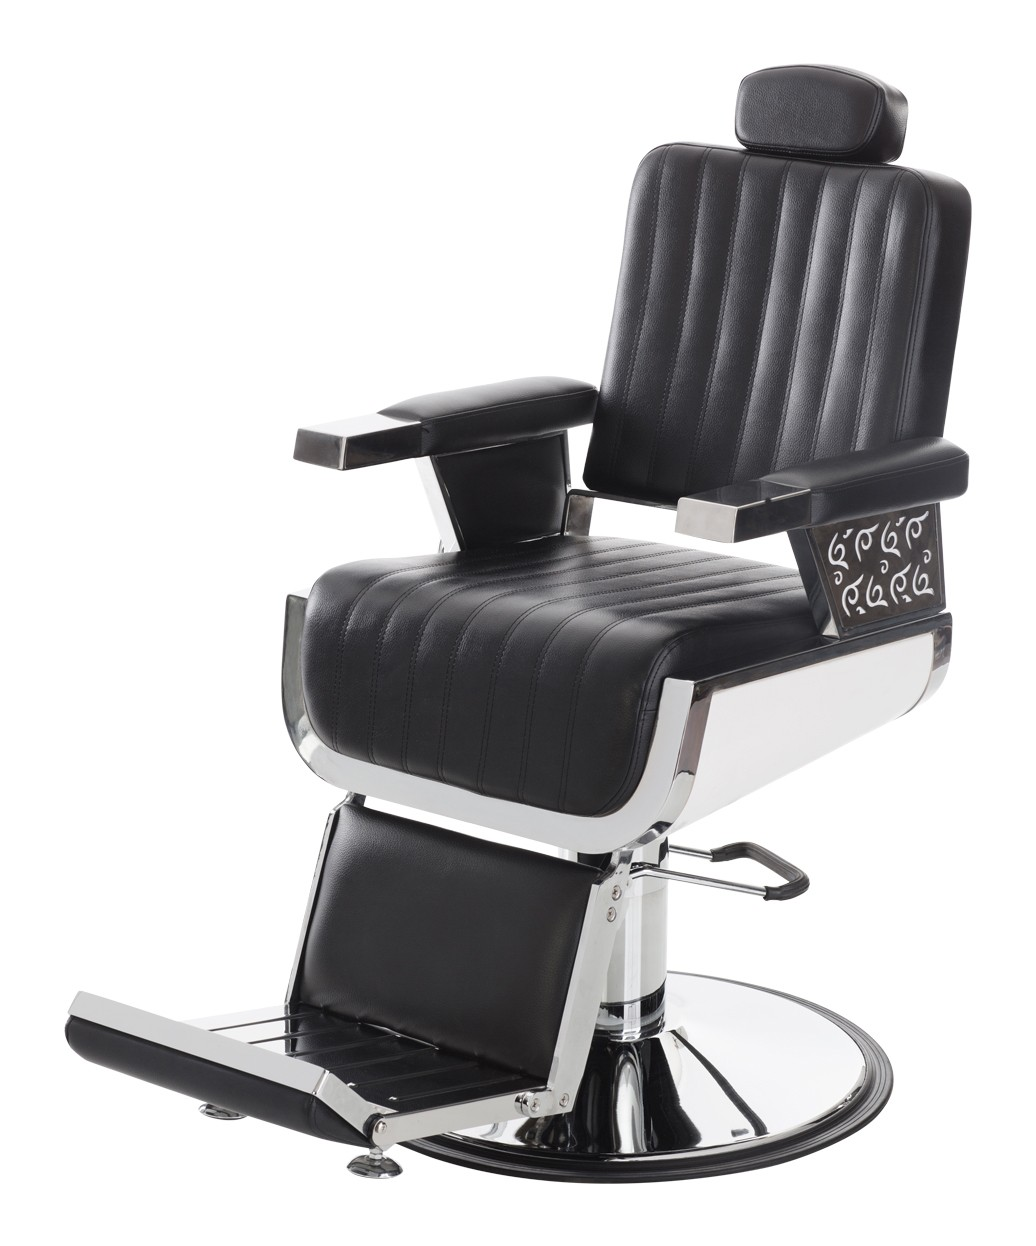 Shop Chairs Omni Professional Barber Chair